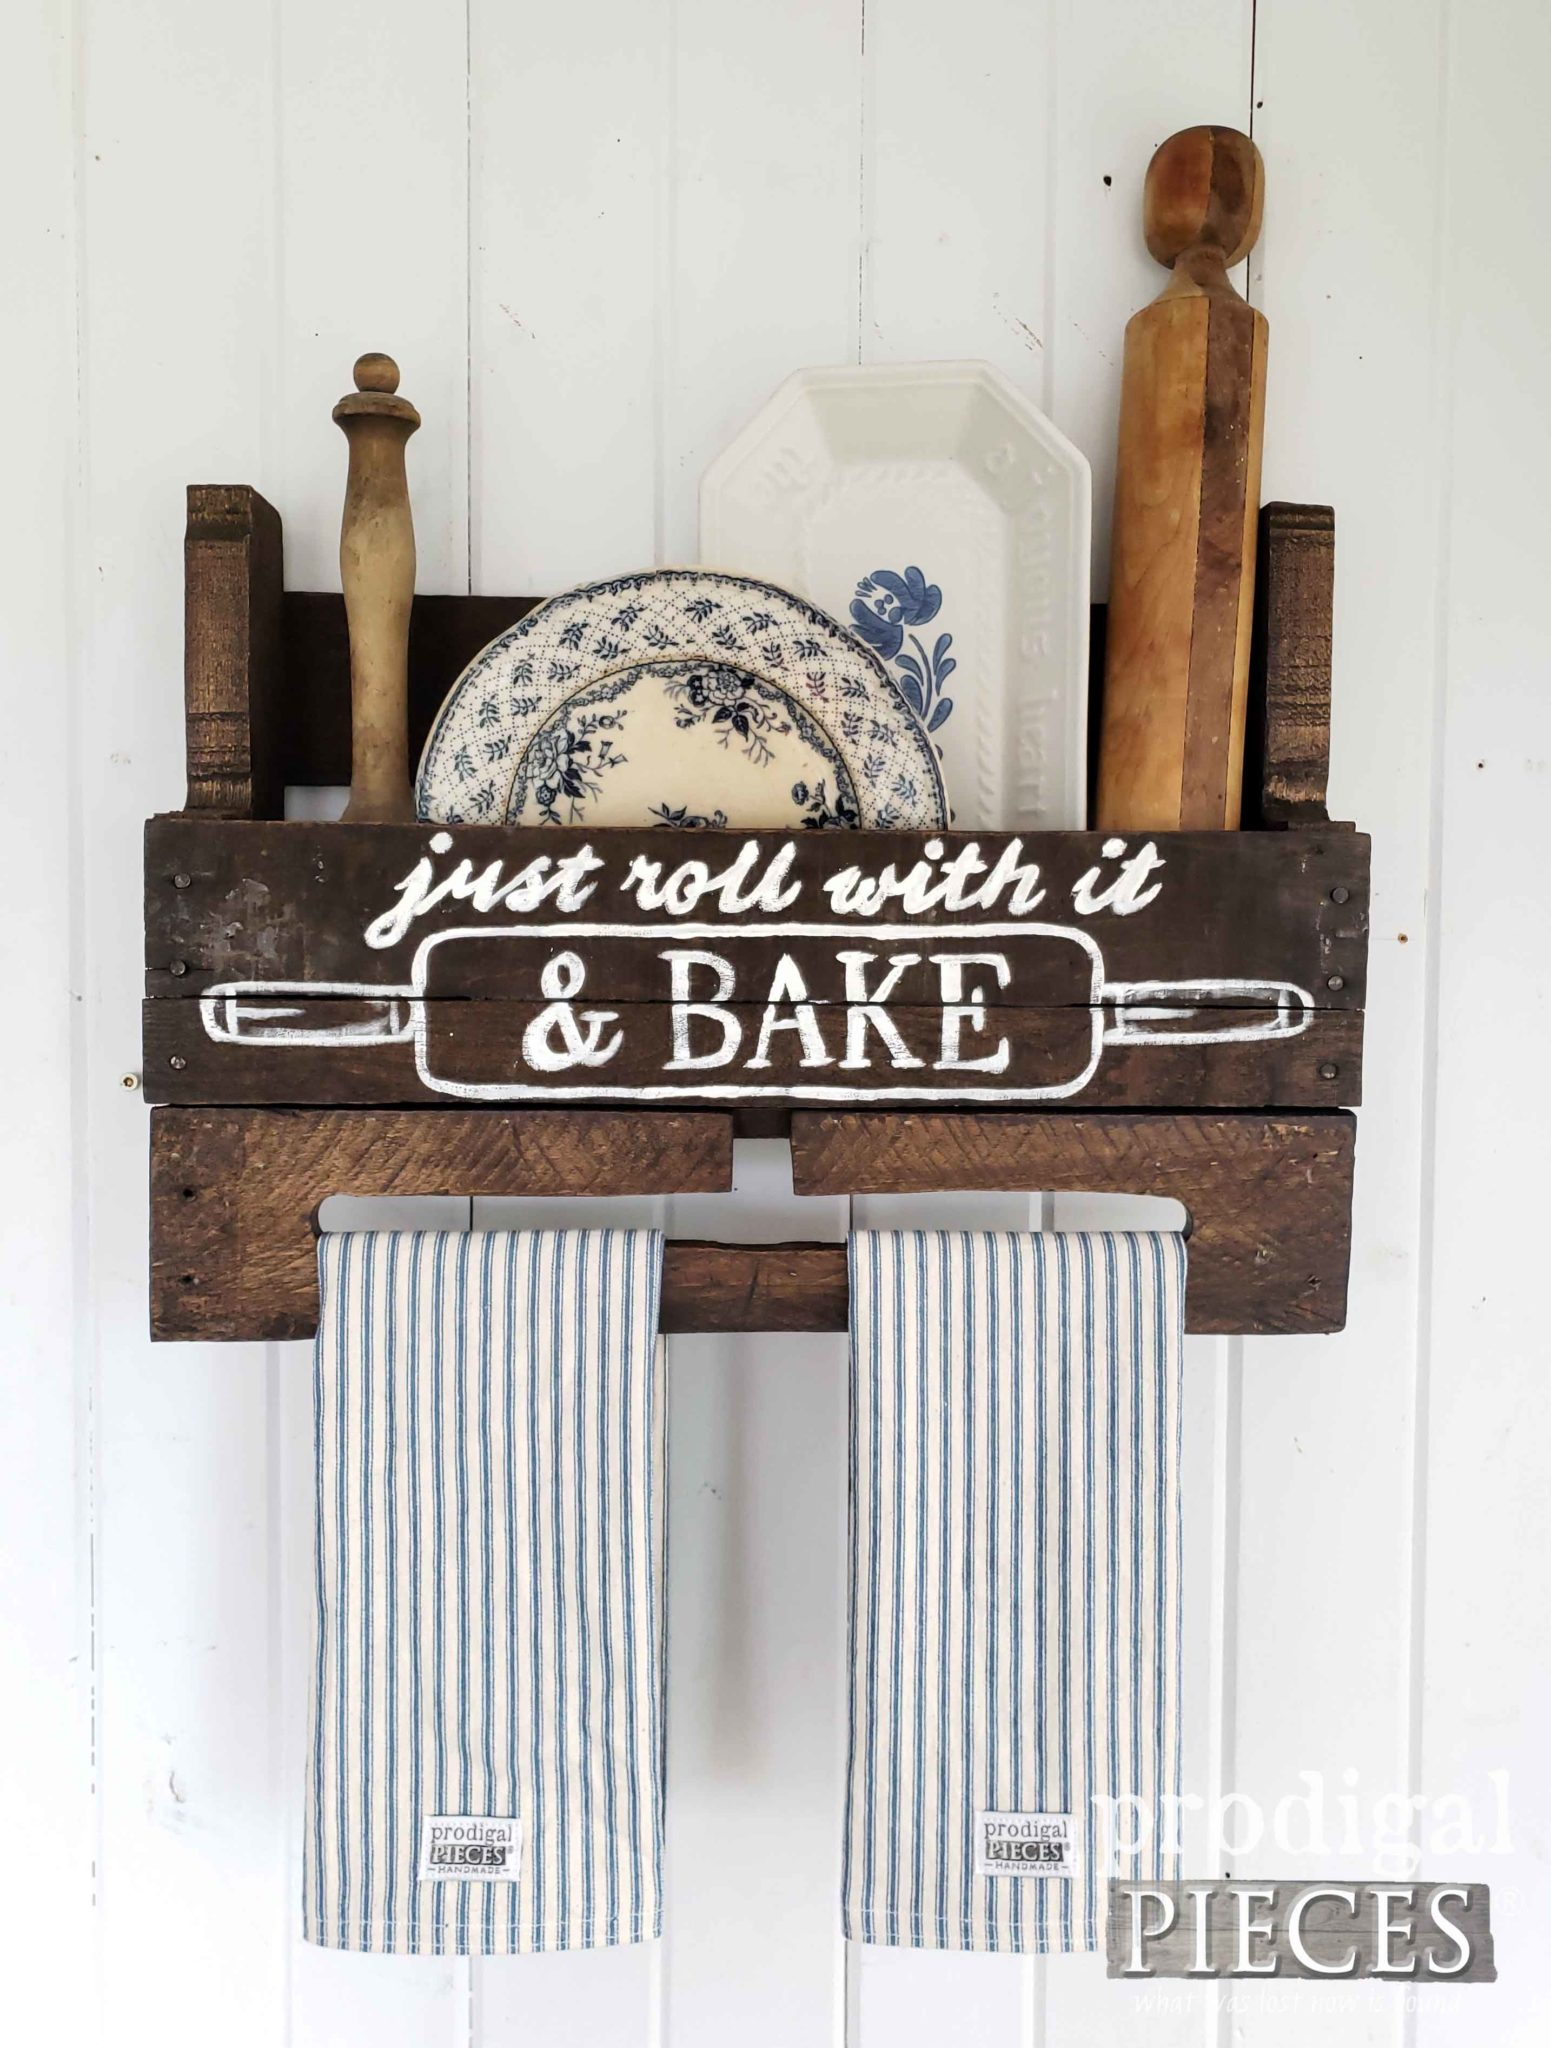 Rustic Farmhouse Towel Holder with Ticking Stripe Towels Created by Larissa of Prodigal Pieces from an Upcycled Pallet | prodigalpieces.com #prodigalpieces #diy #farmhouse #home #homedecor #handmade